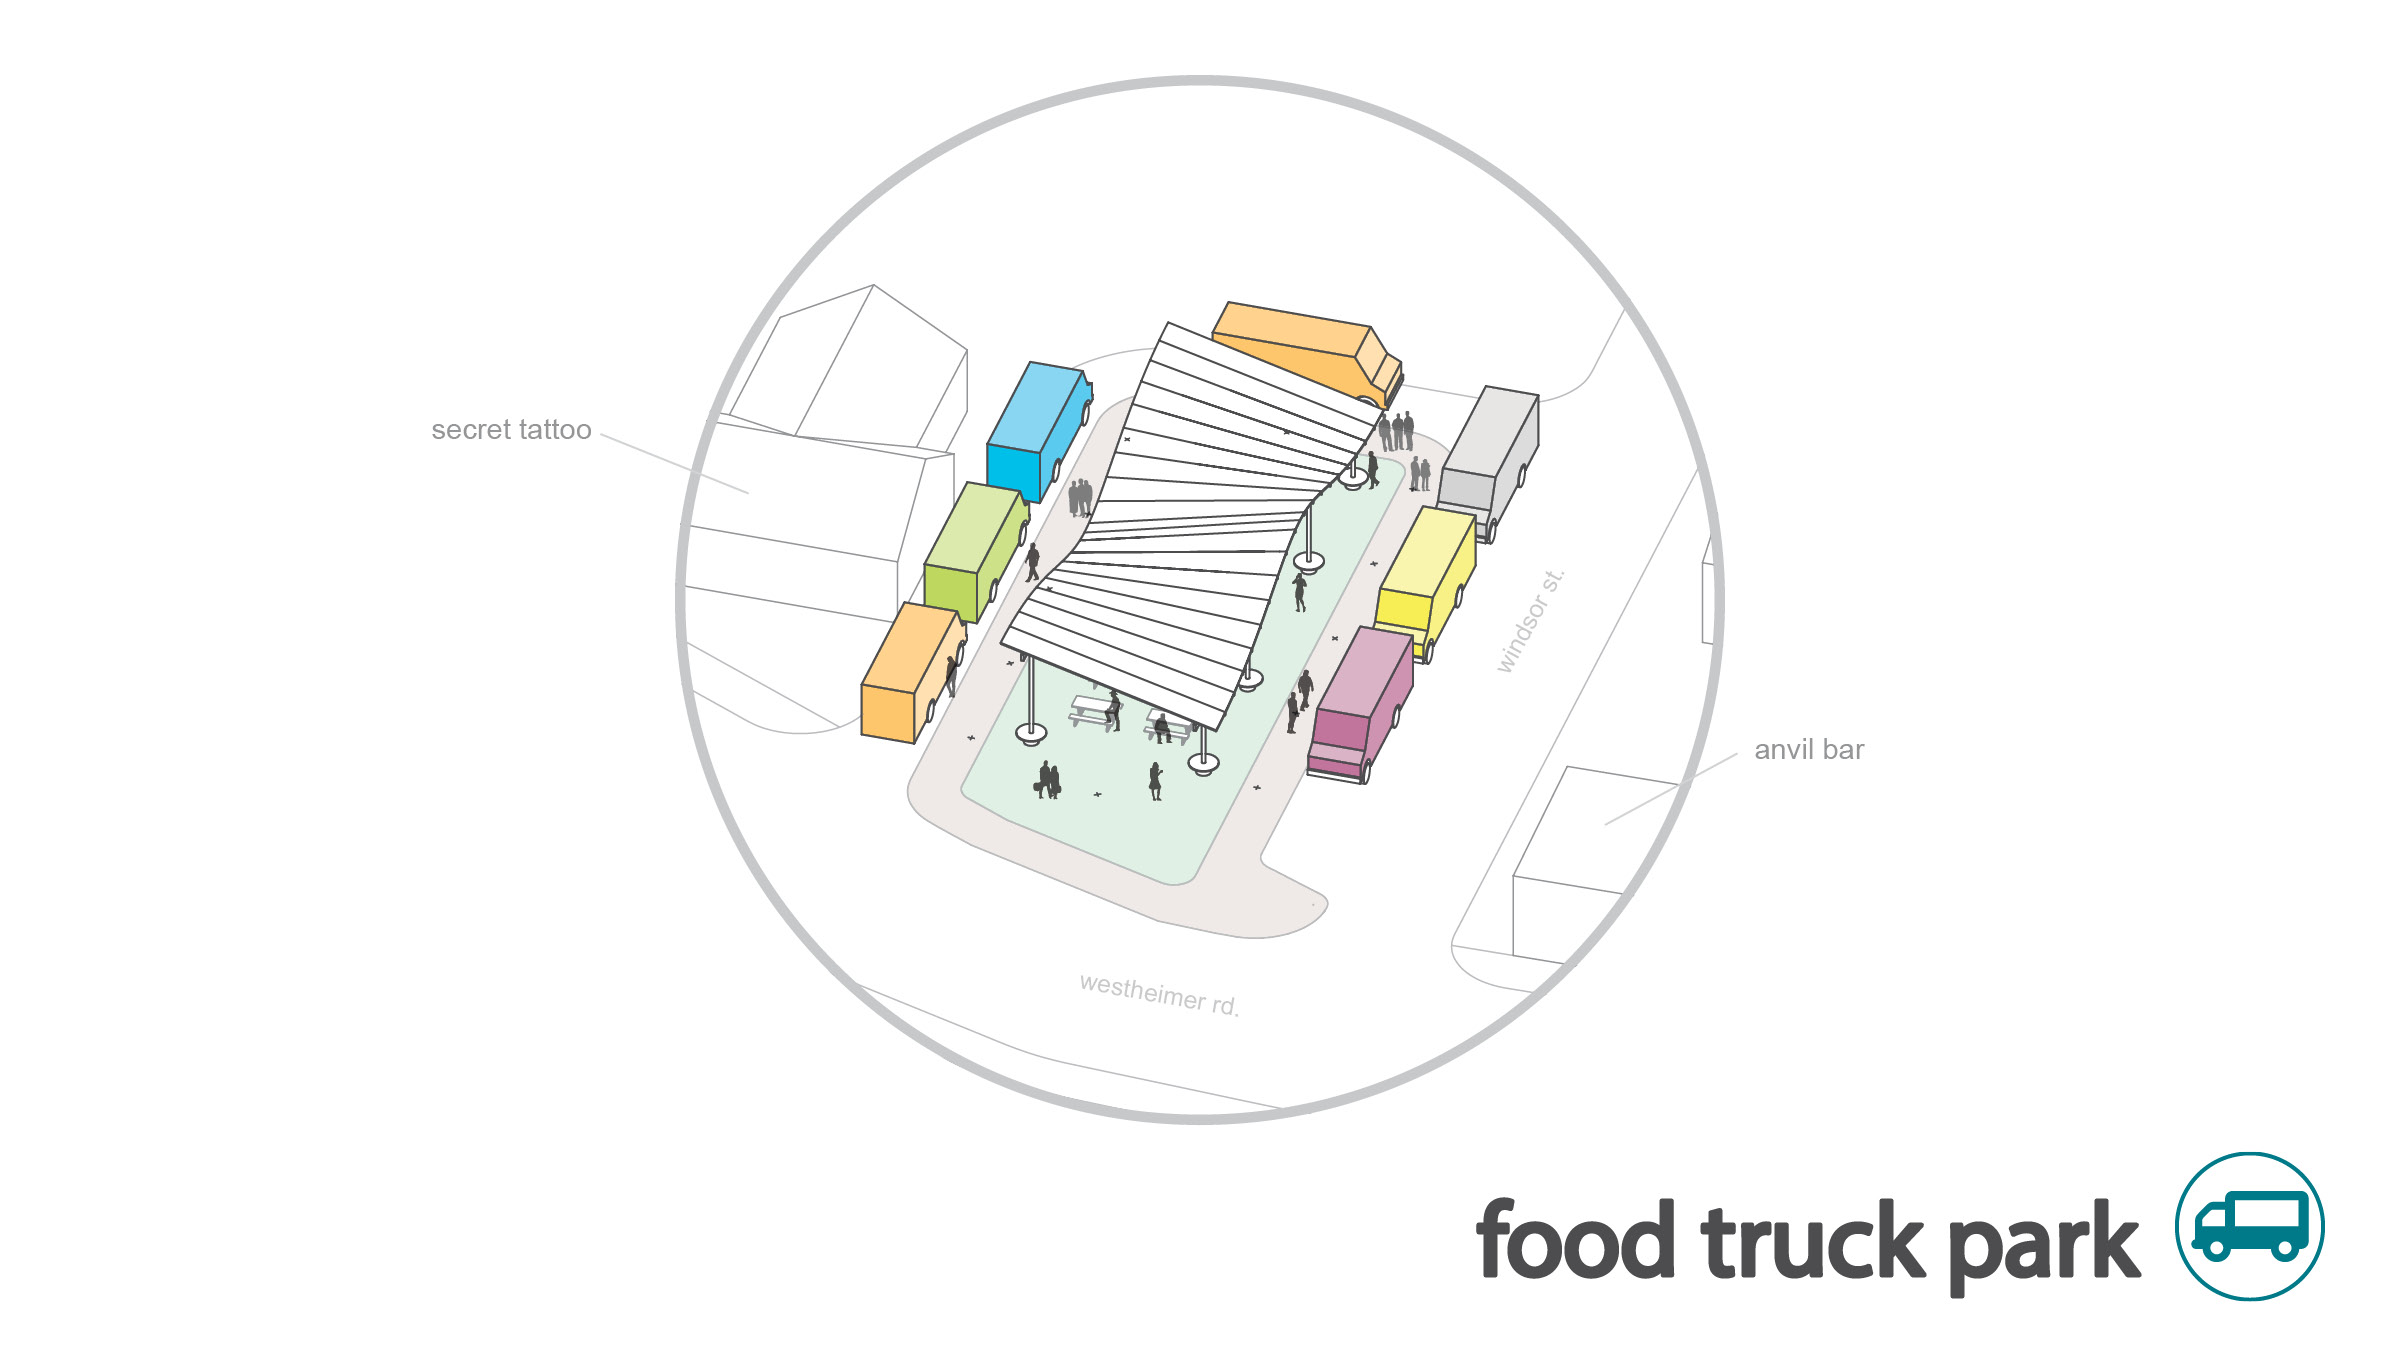 food truck park become permit in phase 02 and is now the premier food truck park in Houston, allowing new food trucks to debut to the public